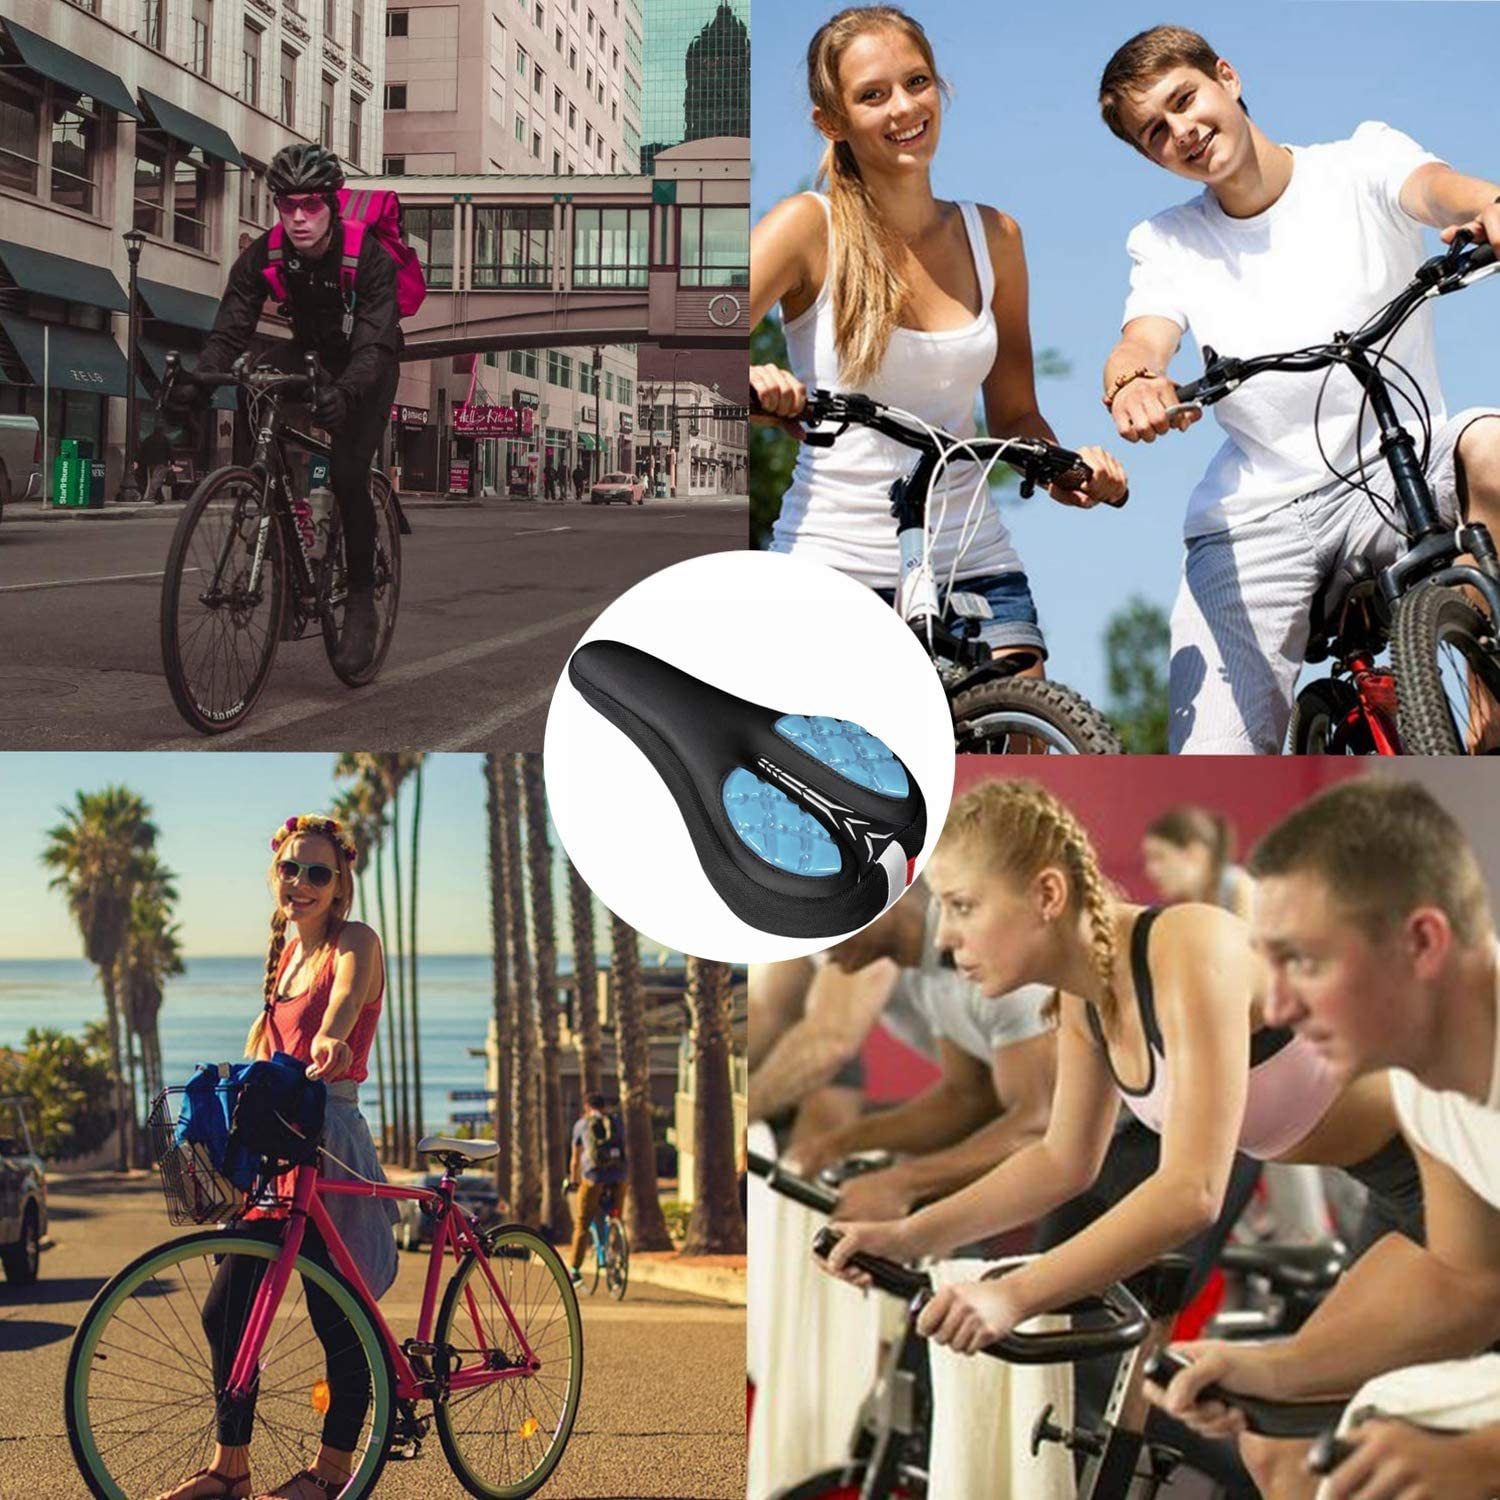 Black Gym or Toddler Bike Mountain Road Miniues Gel Bike Seat Cover Universal Soft Silicone Cushion Comfortable Bicycle Saddle Replacement for Exercise